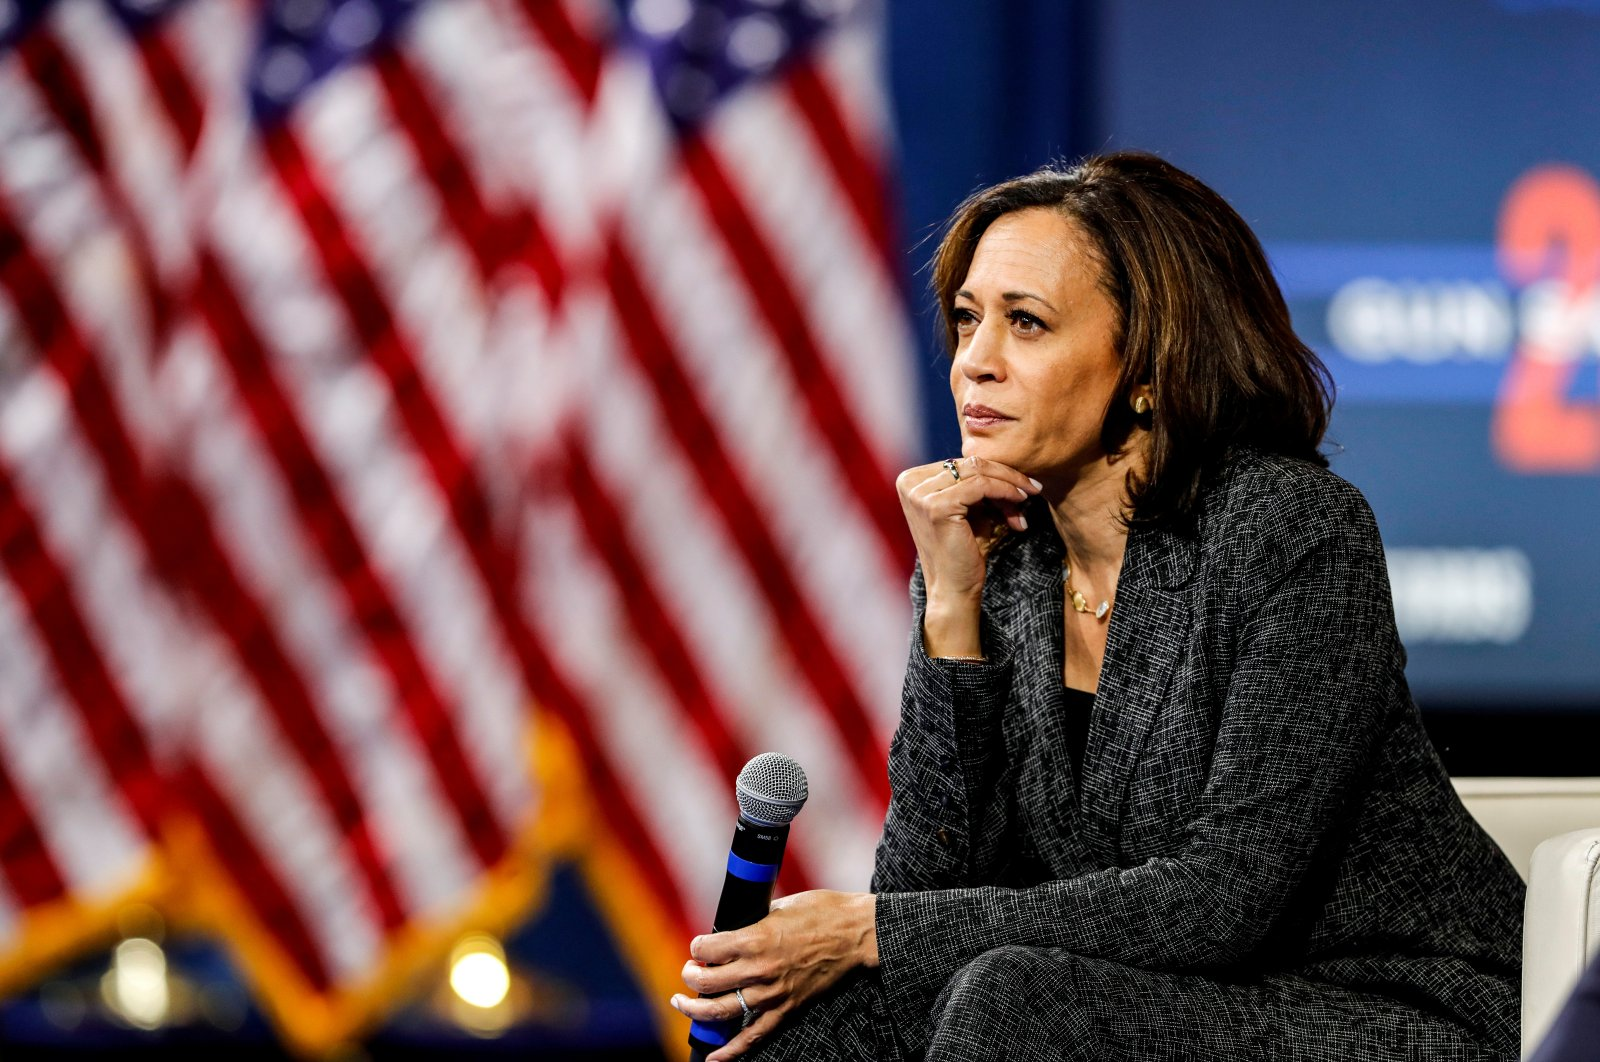 U.S. Democratic presidential candidate Sen. Kamala Harris listens to a question from the audience during a forum in Las Vegas, Nevada, U.S., Oct. 2, 2019. (Reuters Photo)